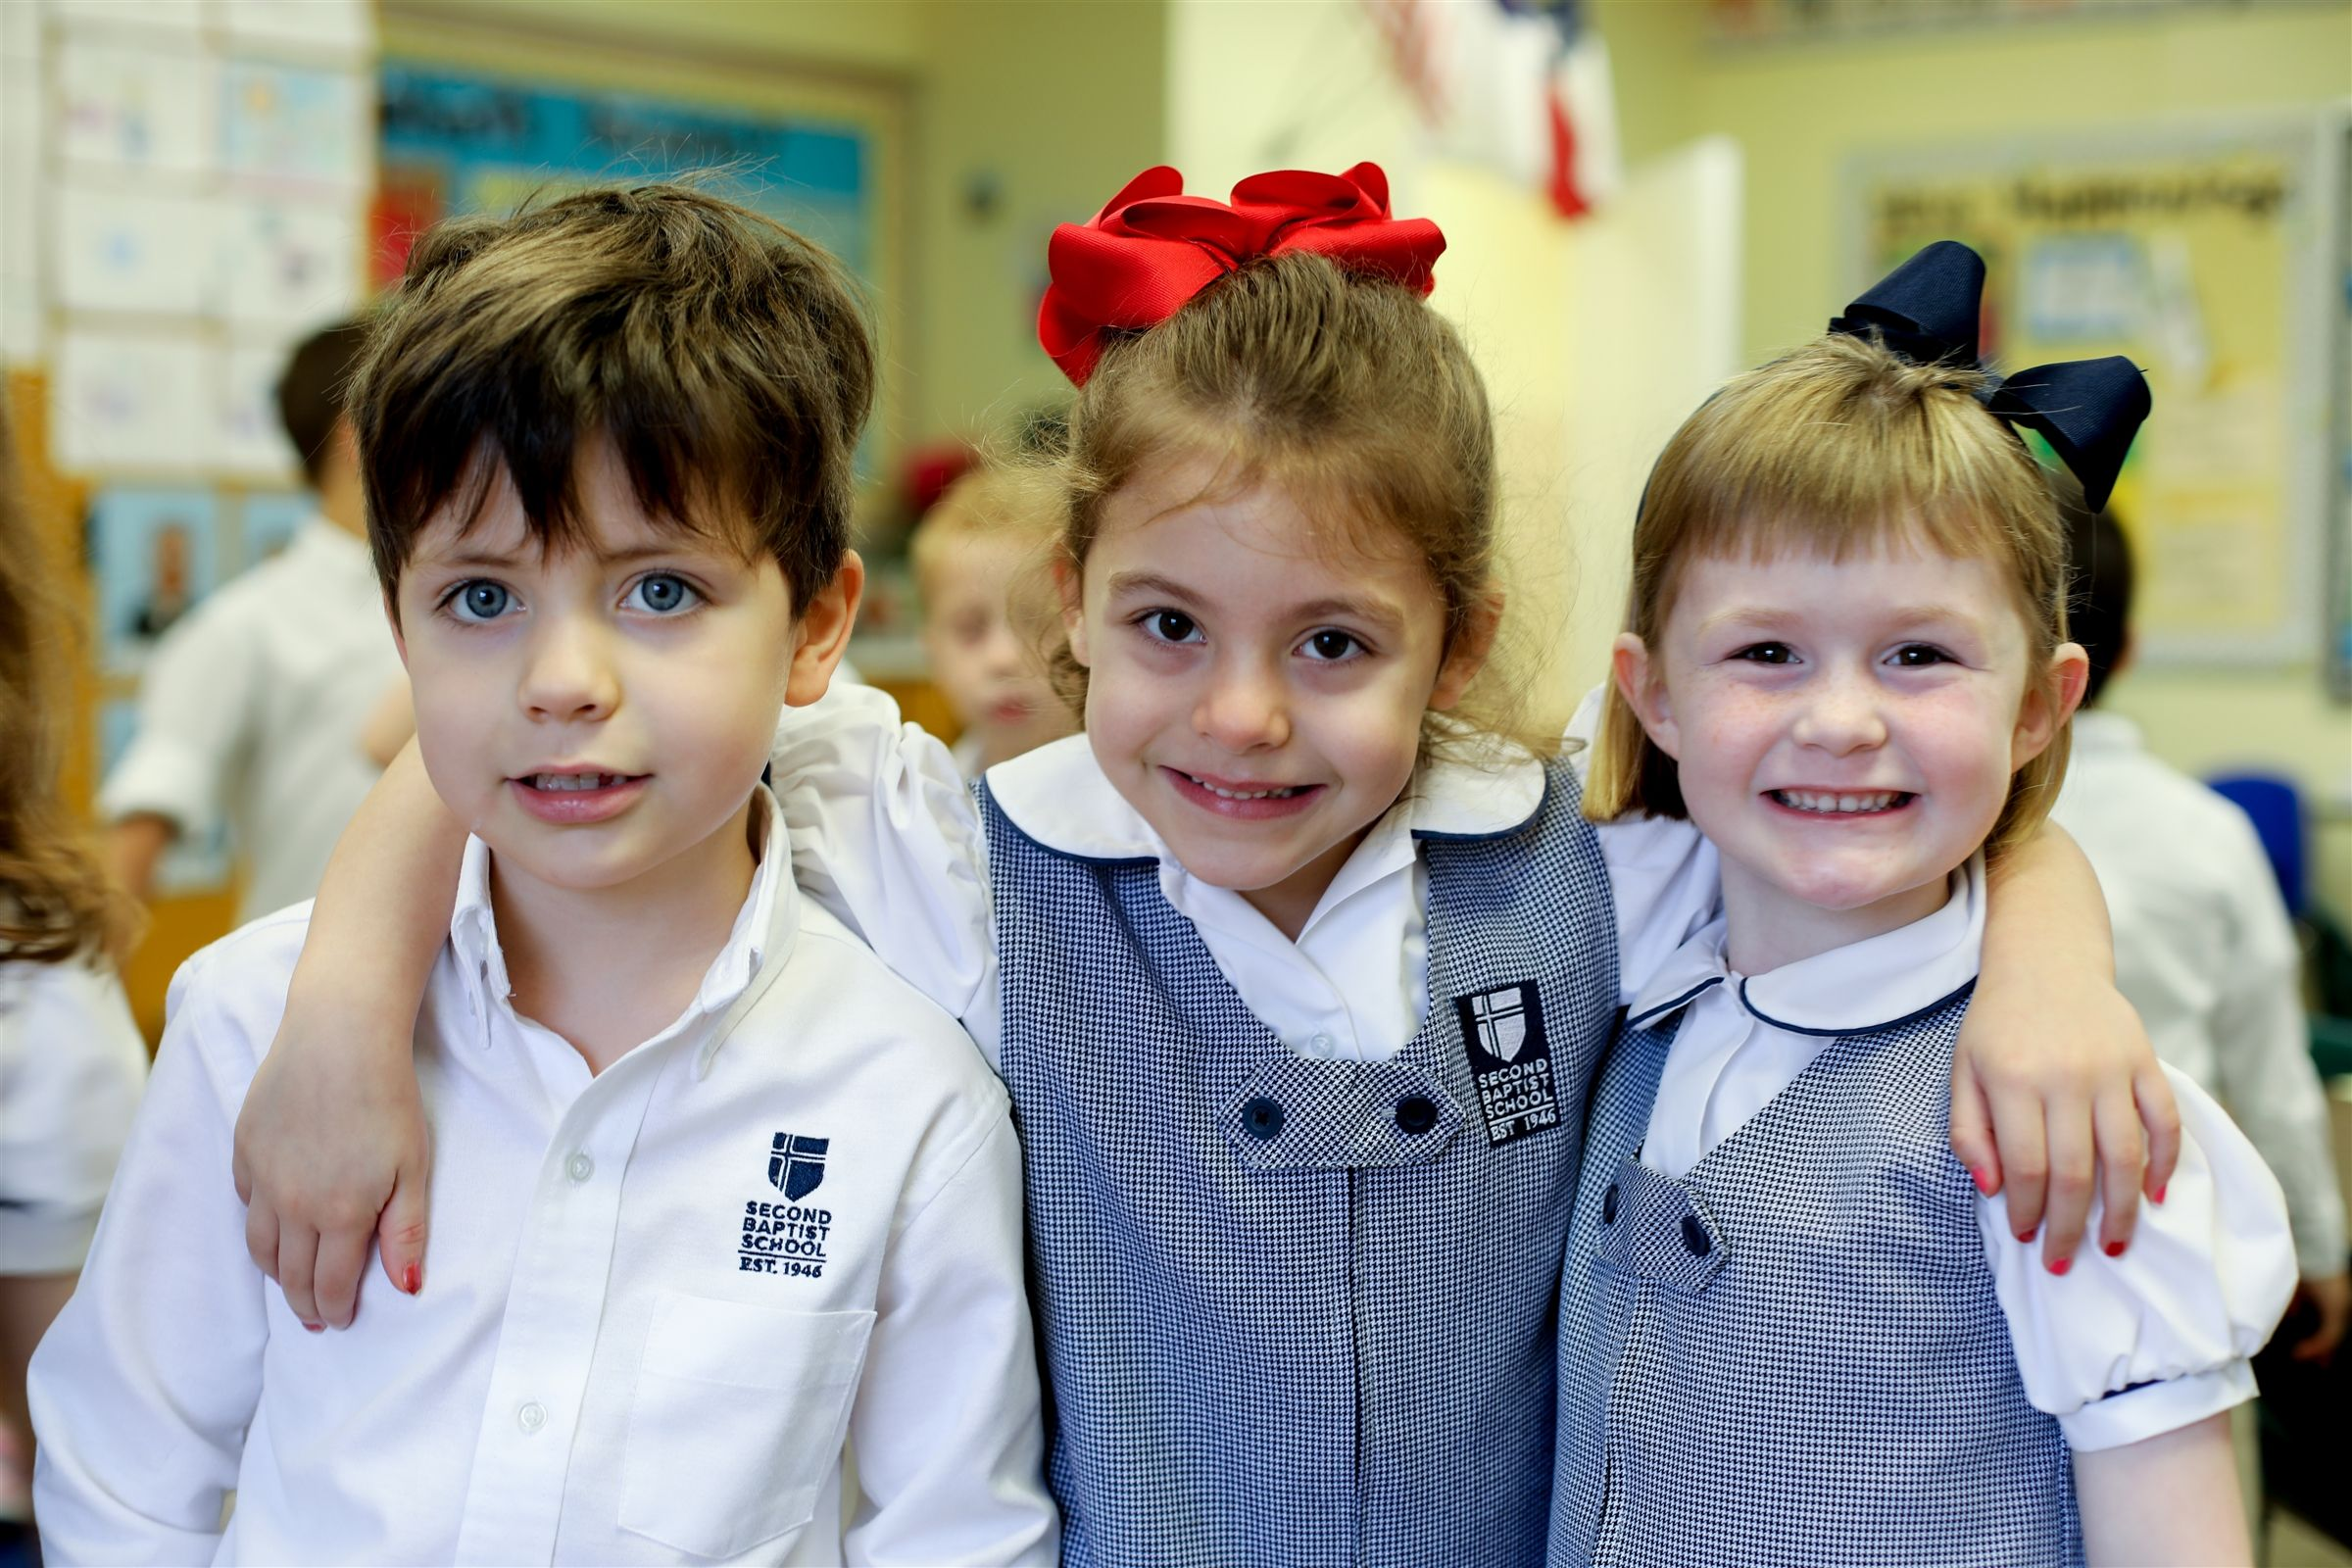 Lower school students gathered together in the classroom at Second Baptist School